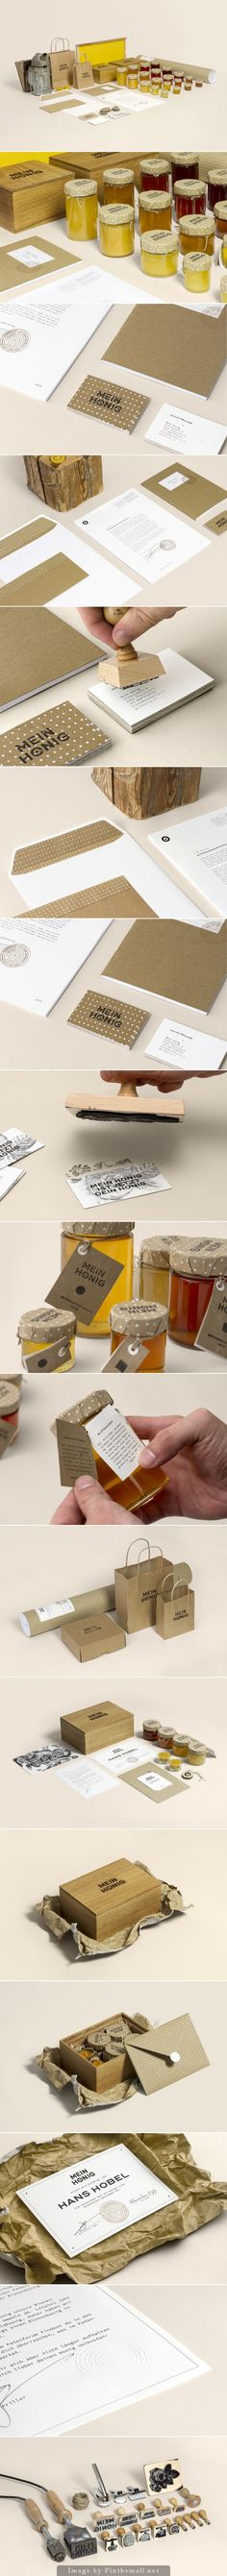 Mein Honig Honey – Brand Identity via Thomas Lichtblau